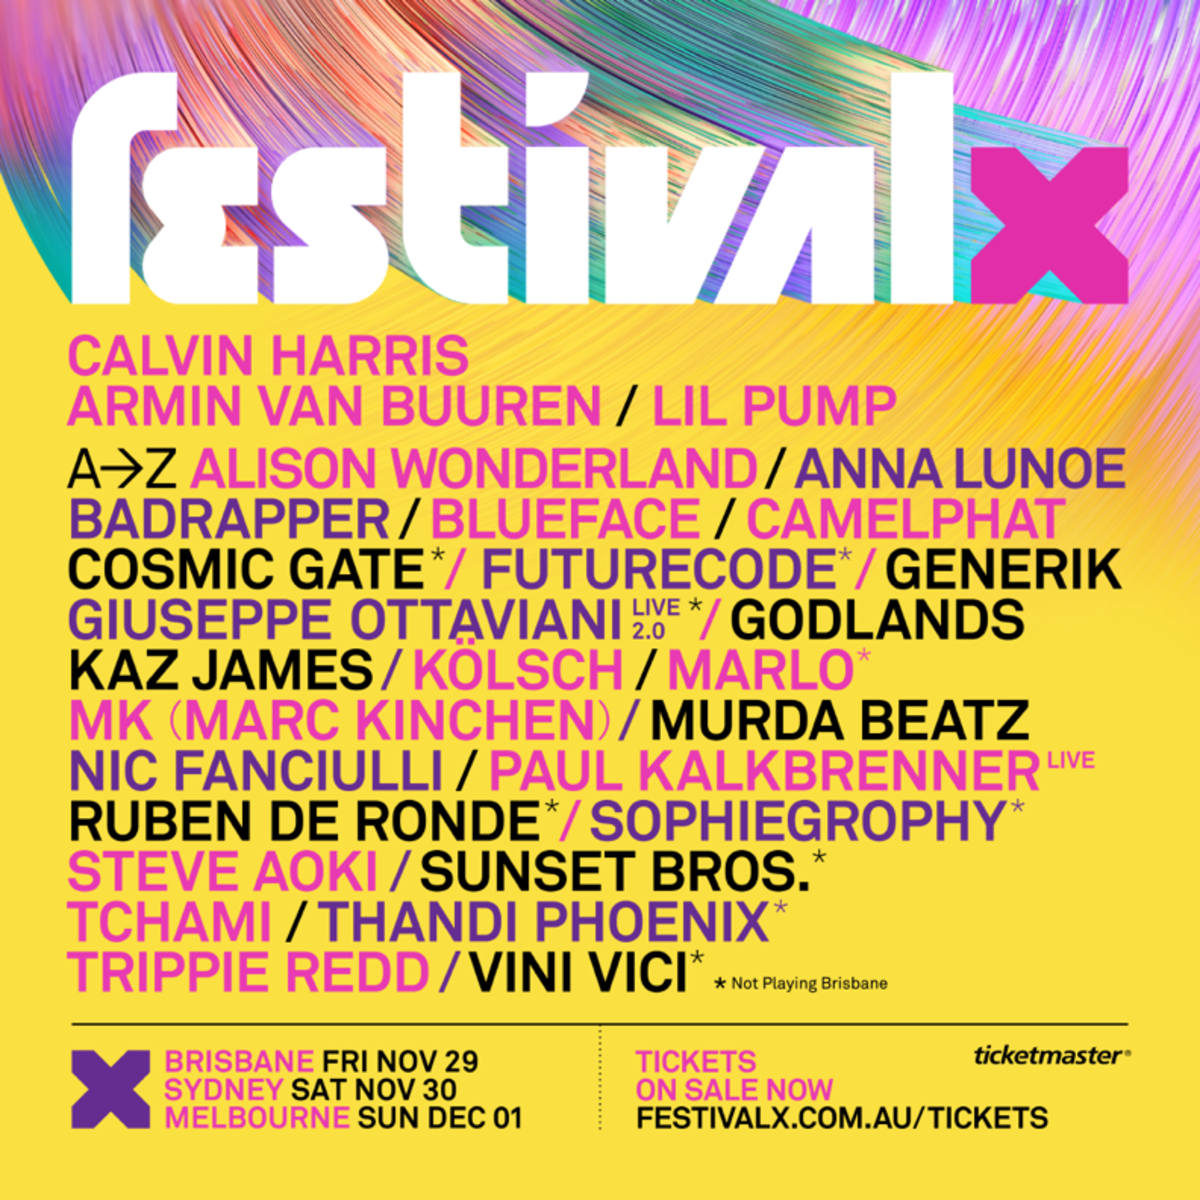 festival x lineup poster